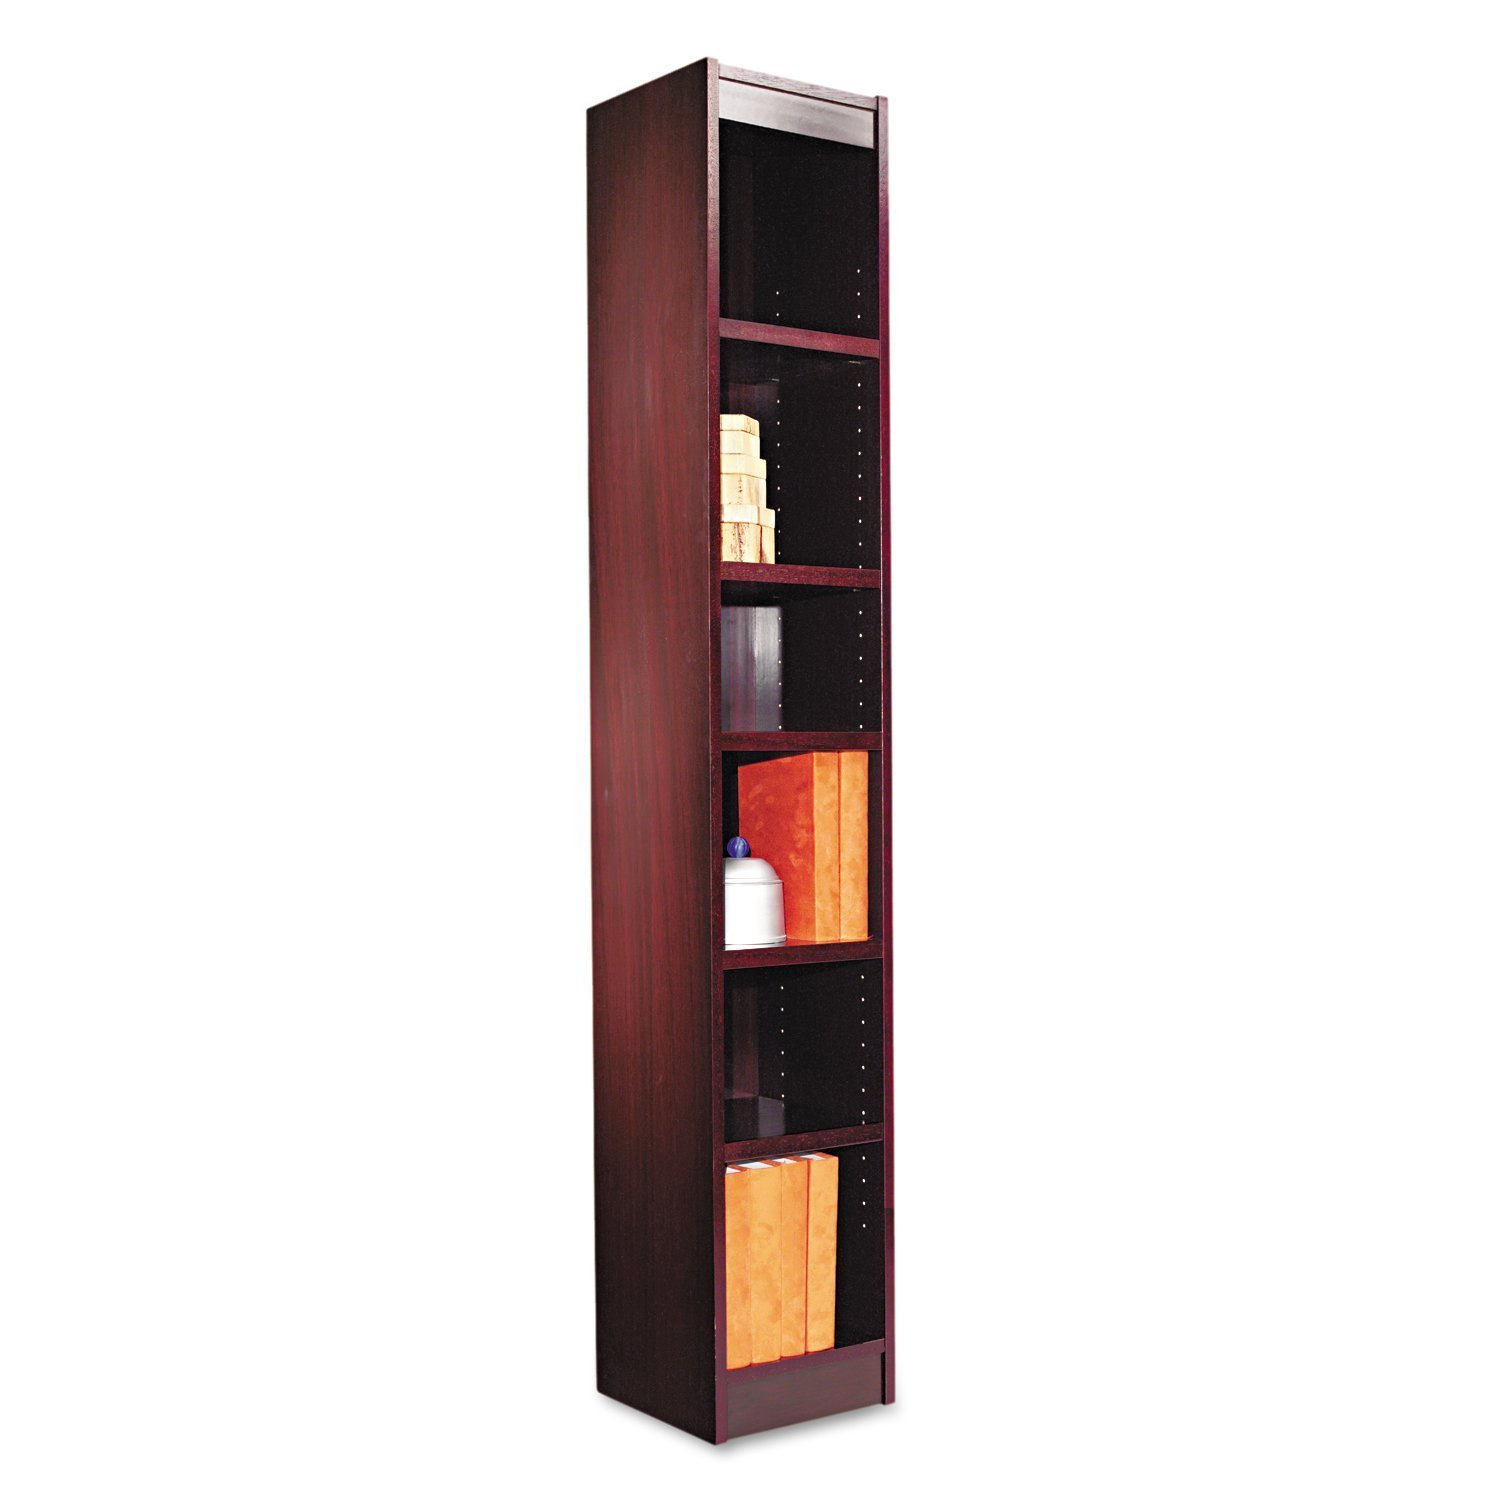 top 15 narrow bookshelf and bookcase collection. Black Bedroom Furniture Sets. Home Design Ideas